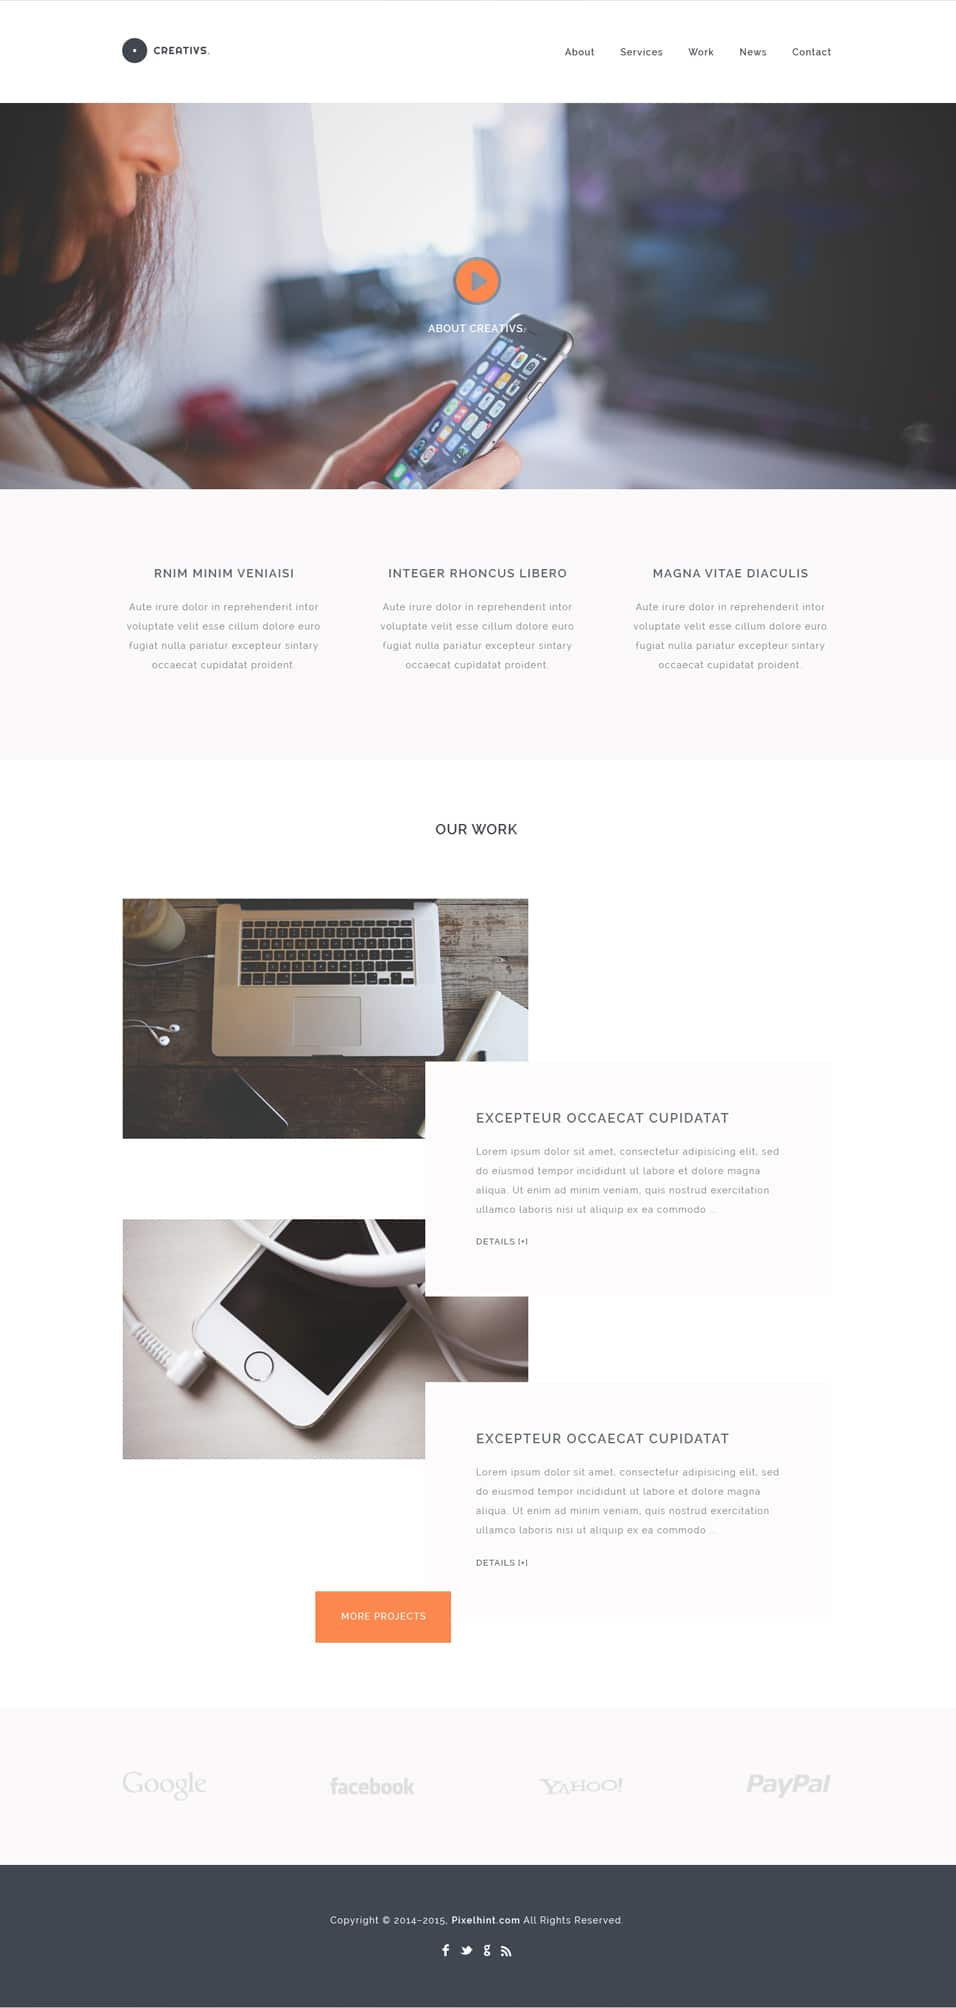 Latest Free Web Elements from November 2014